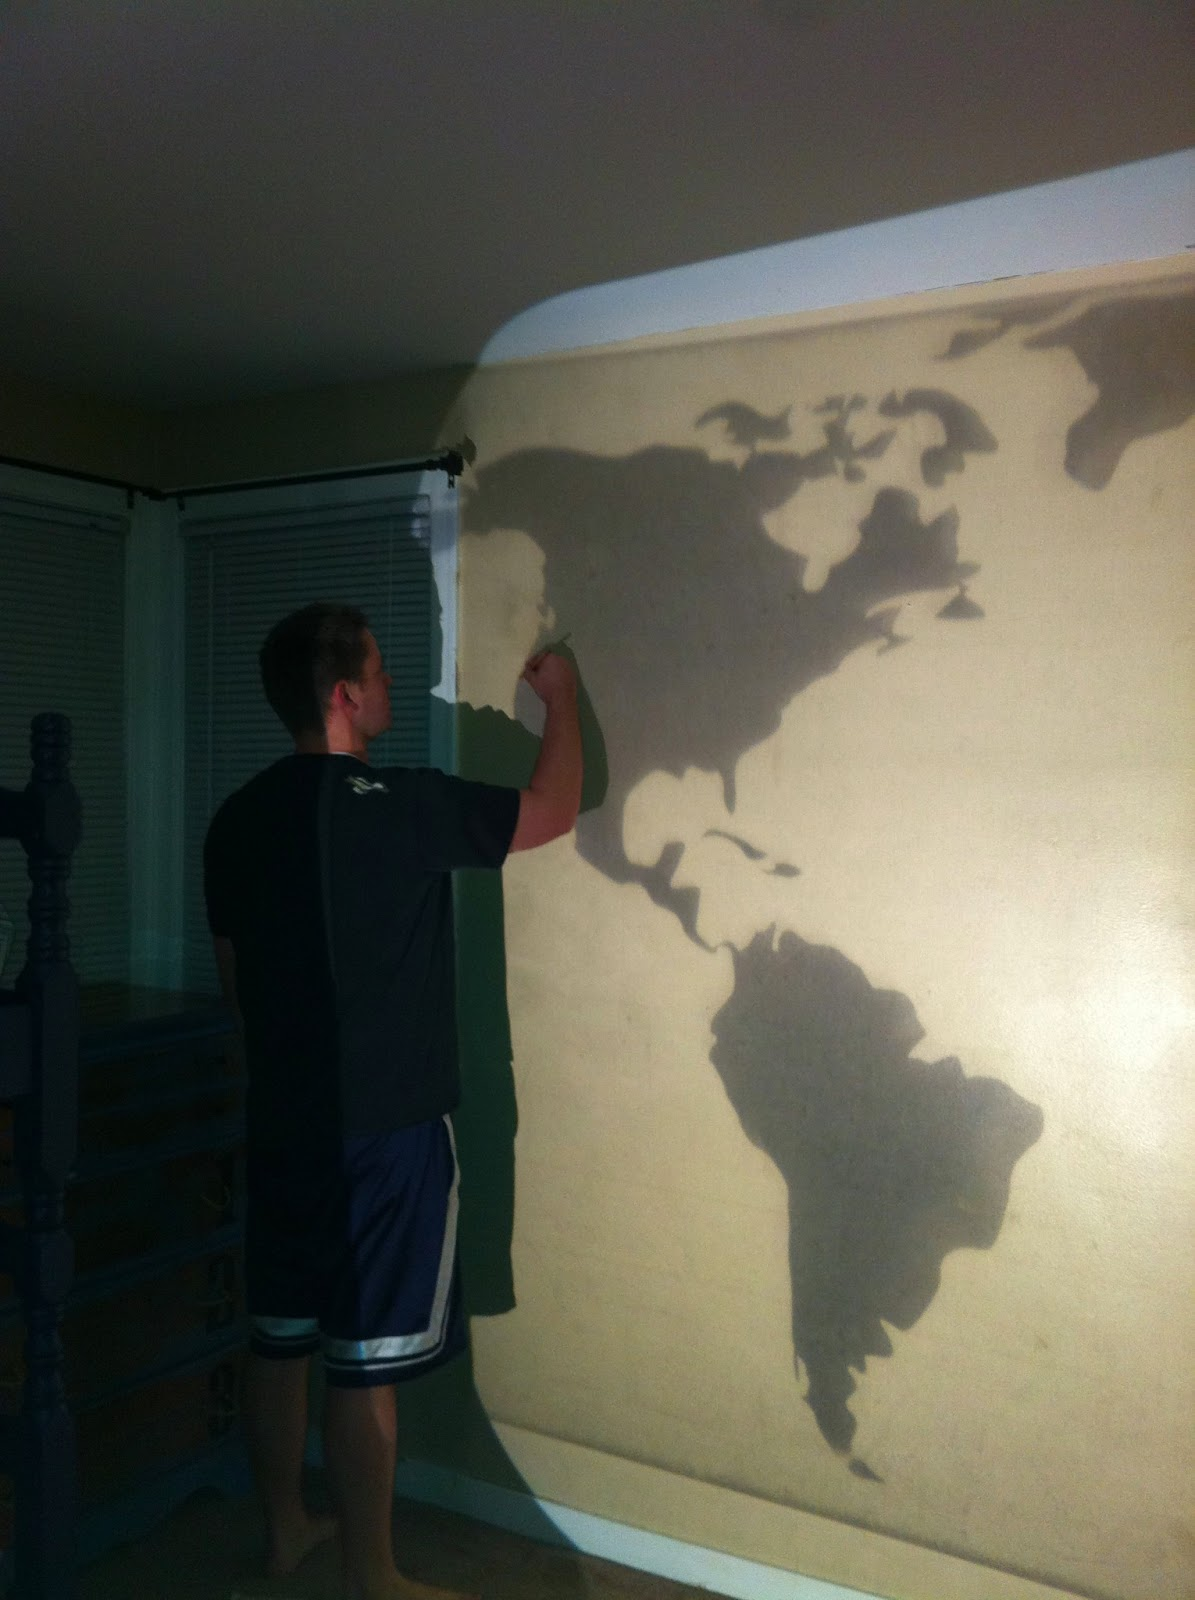 Diy world map wall mural classy clutter for Best projector for mural painting